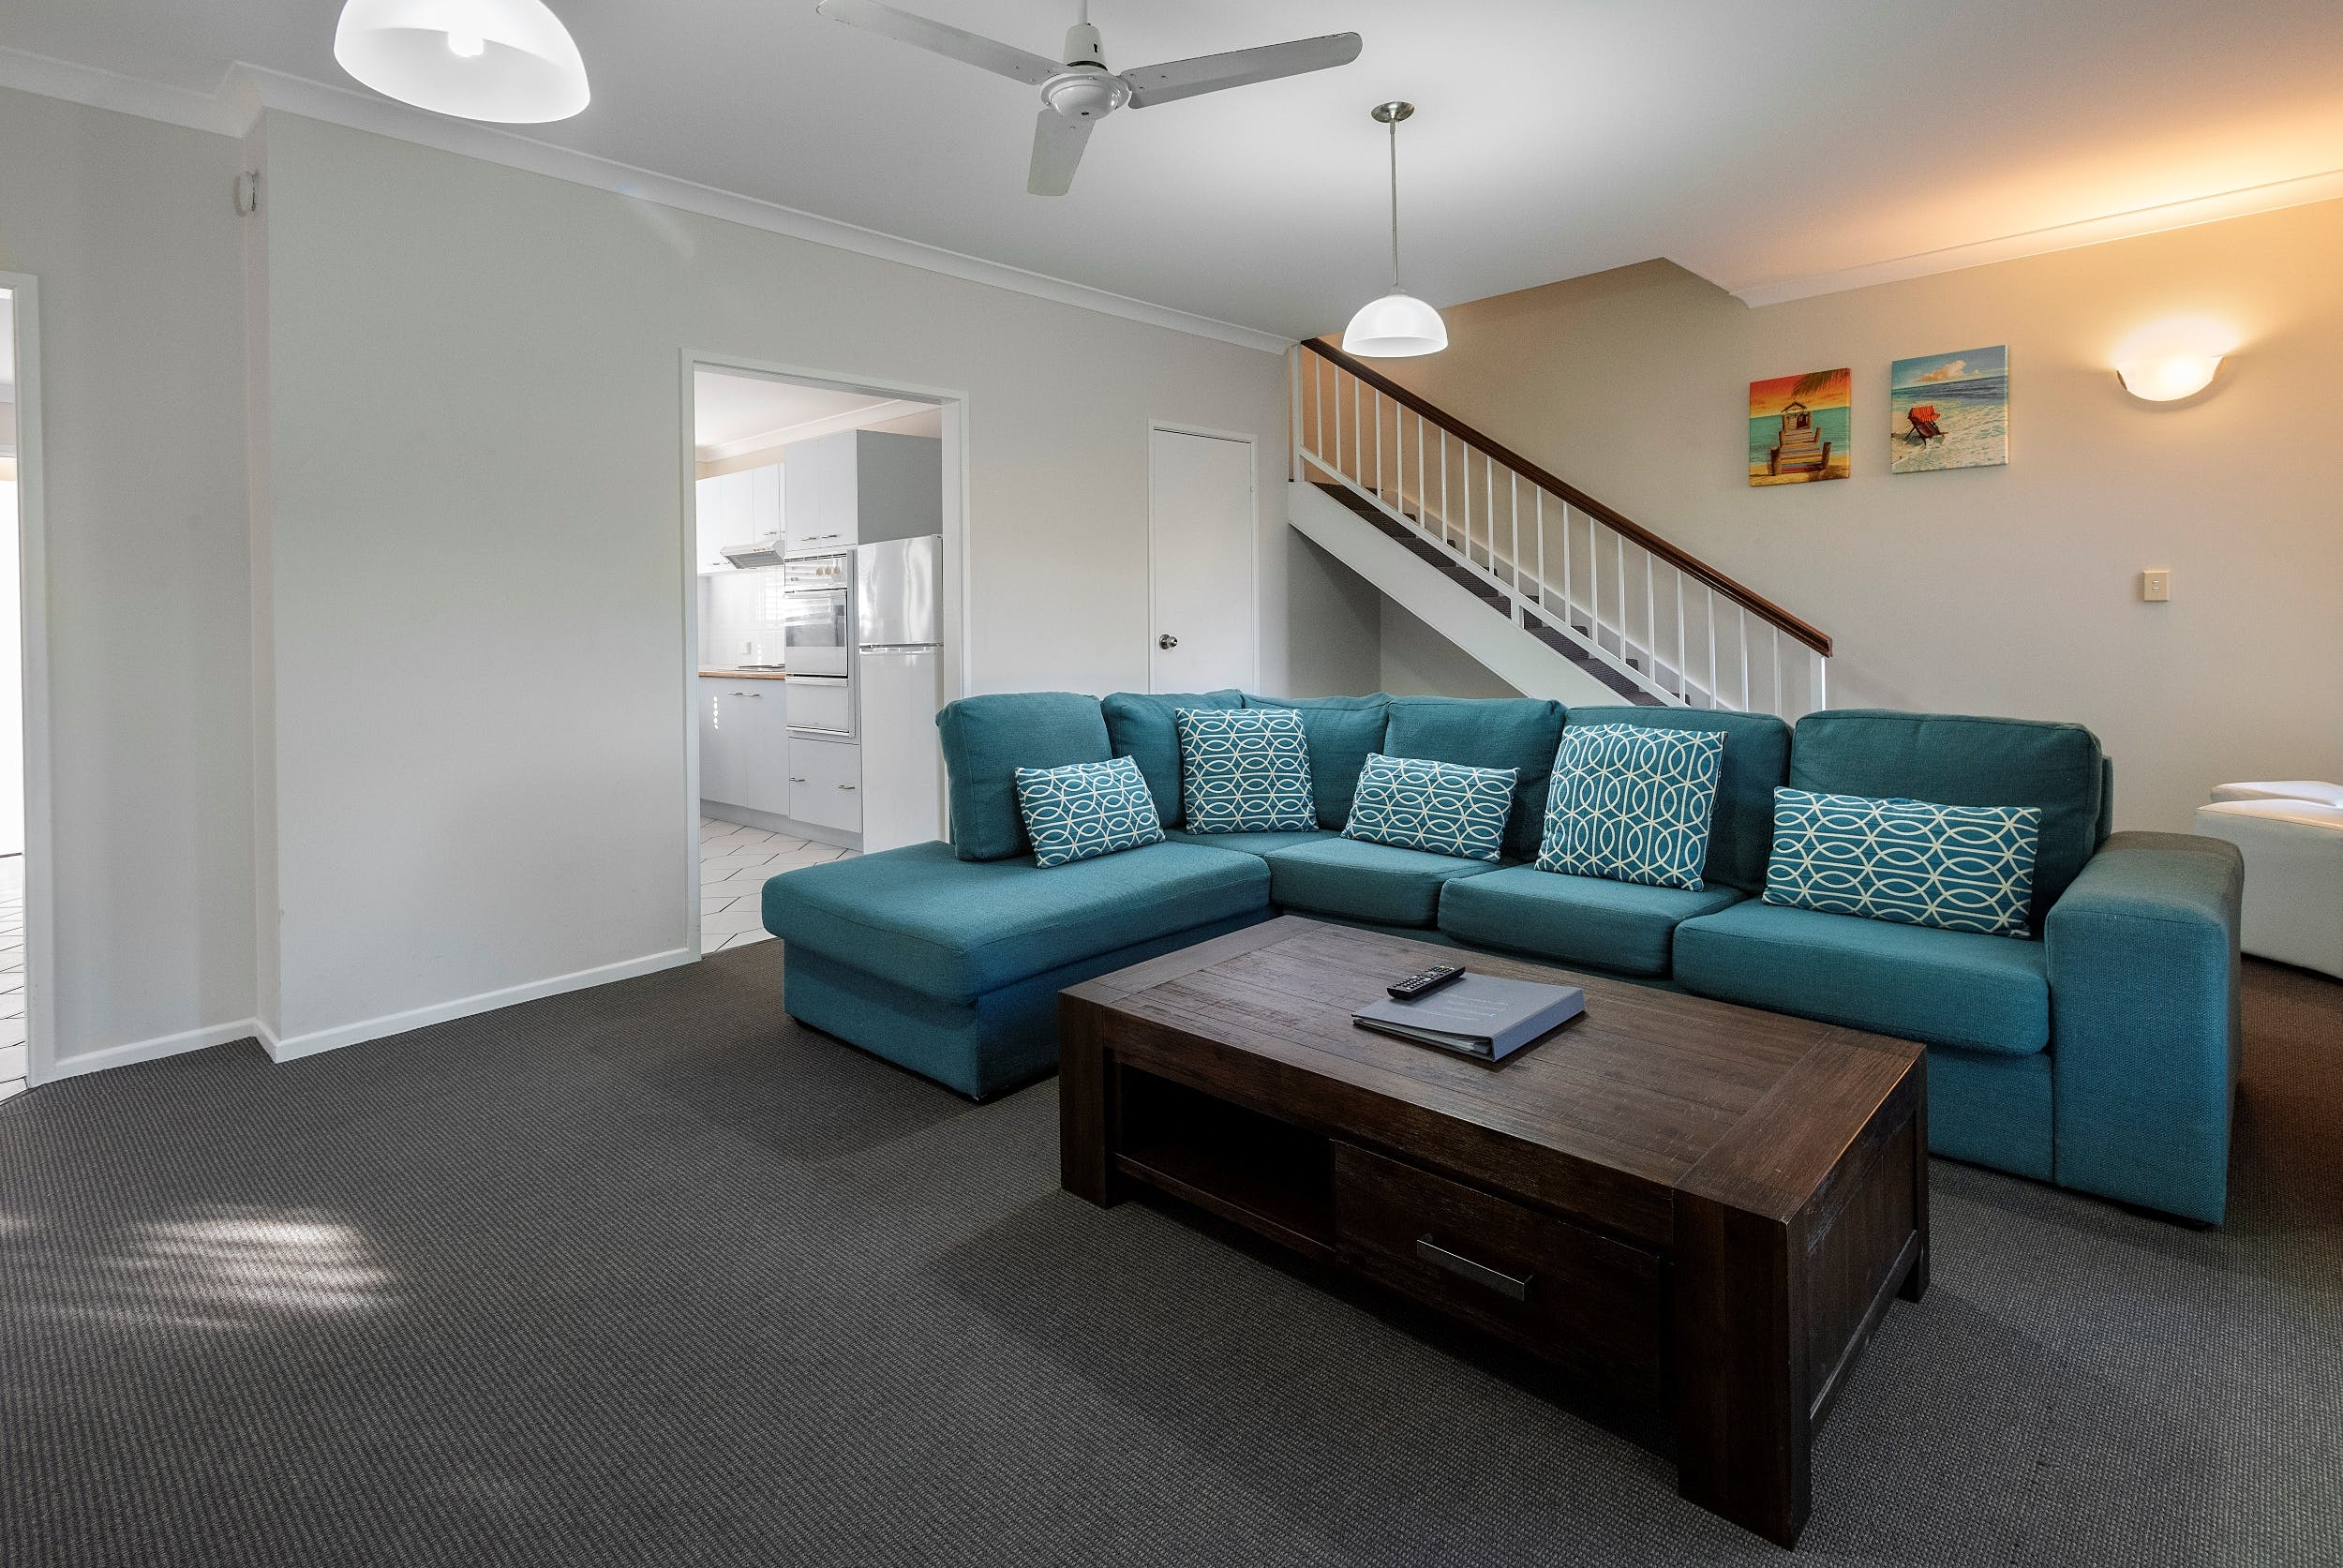 Family Apartment, spacious with full kitchen and serviced daily in Hervey Bay